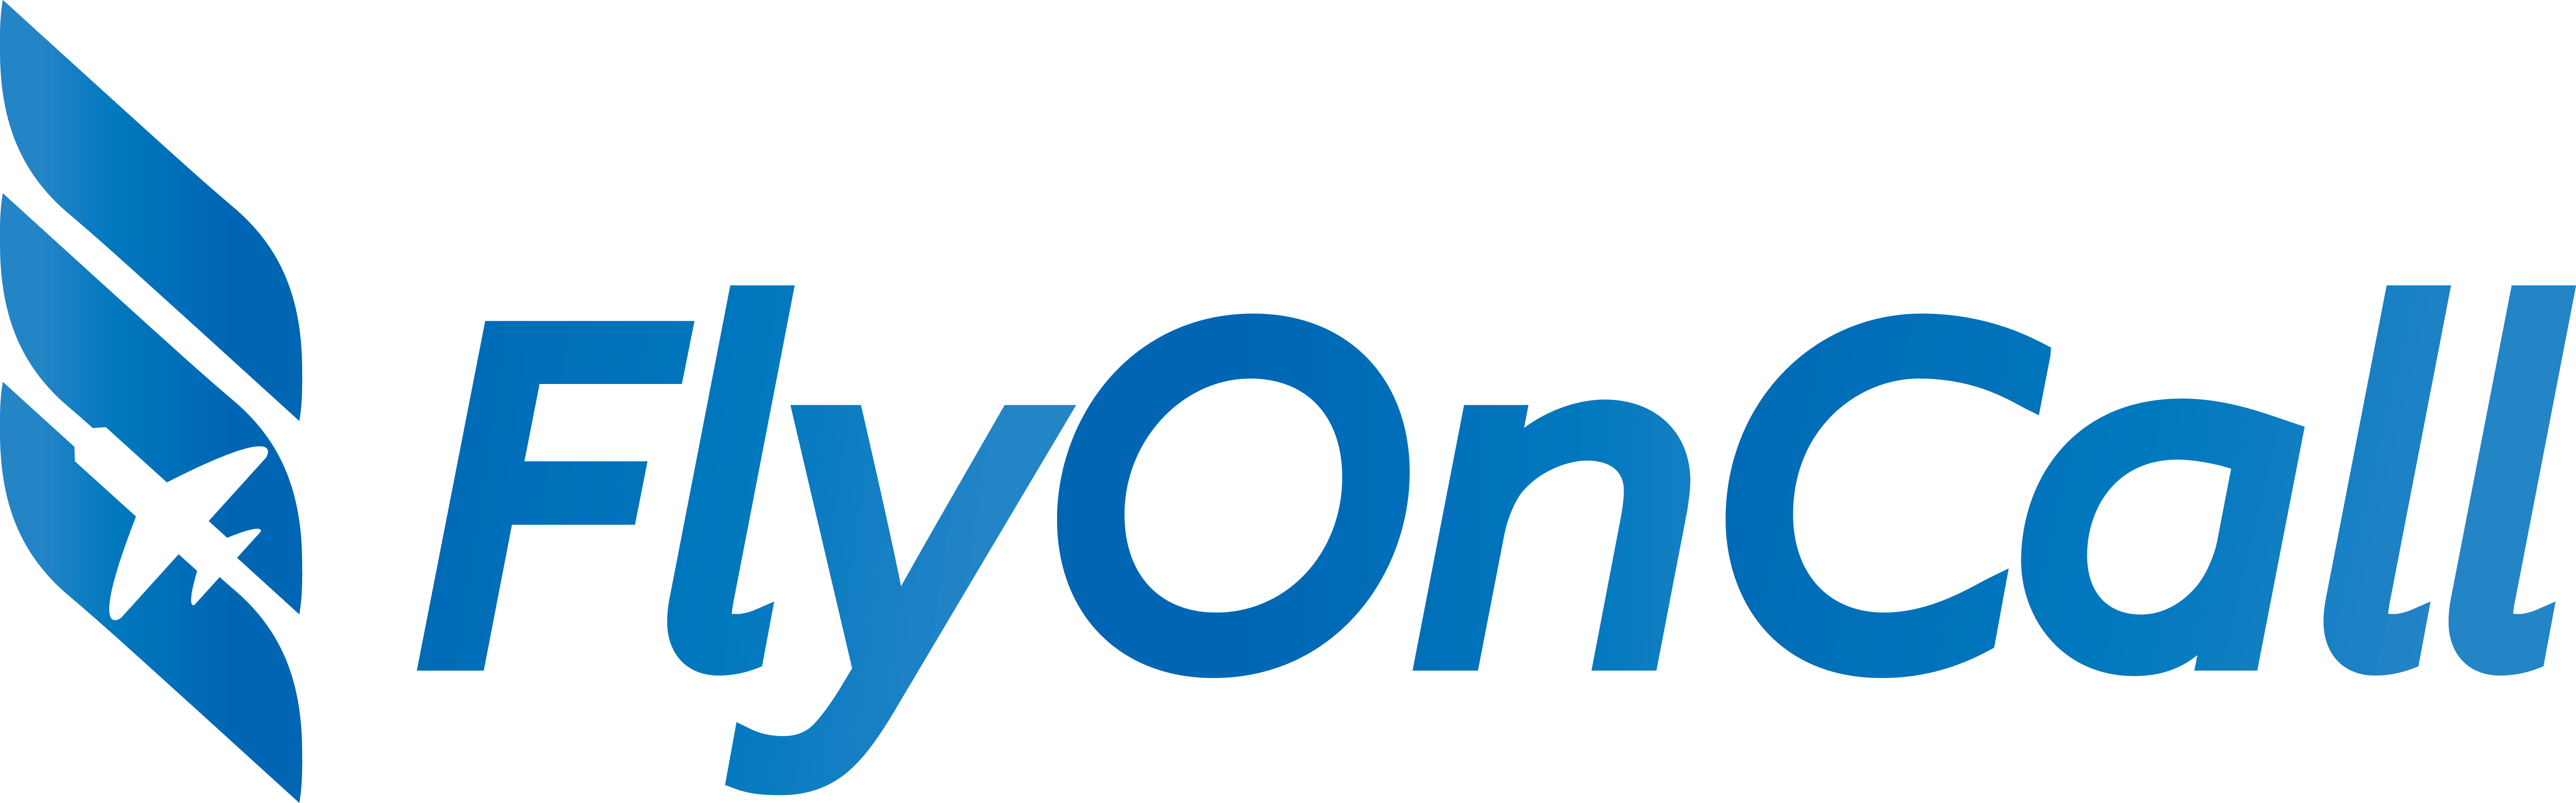 FlyOnCall